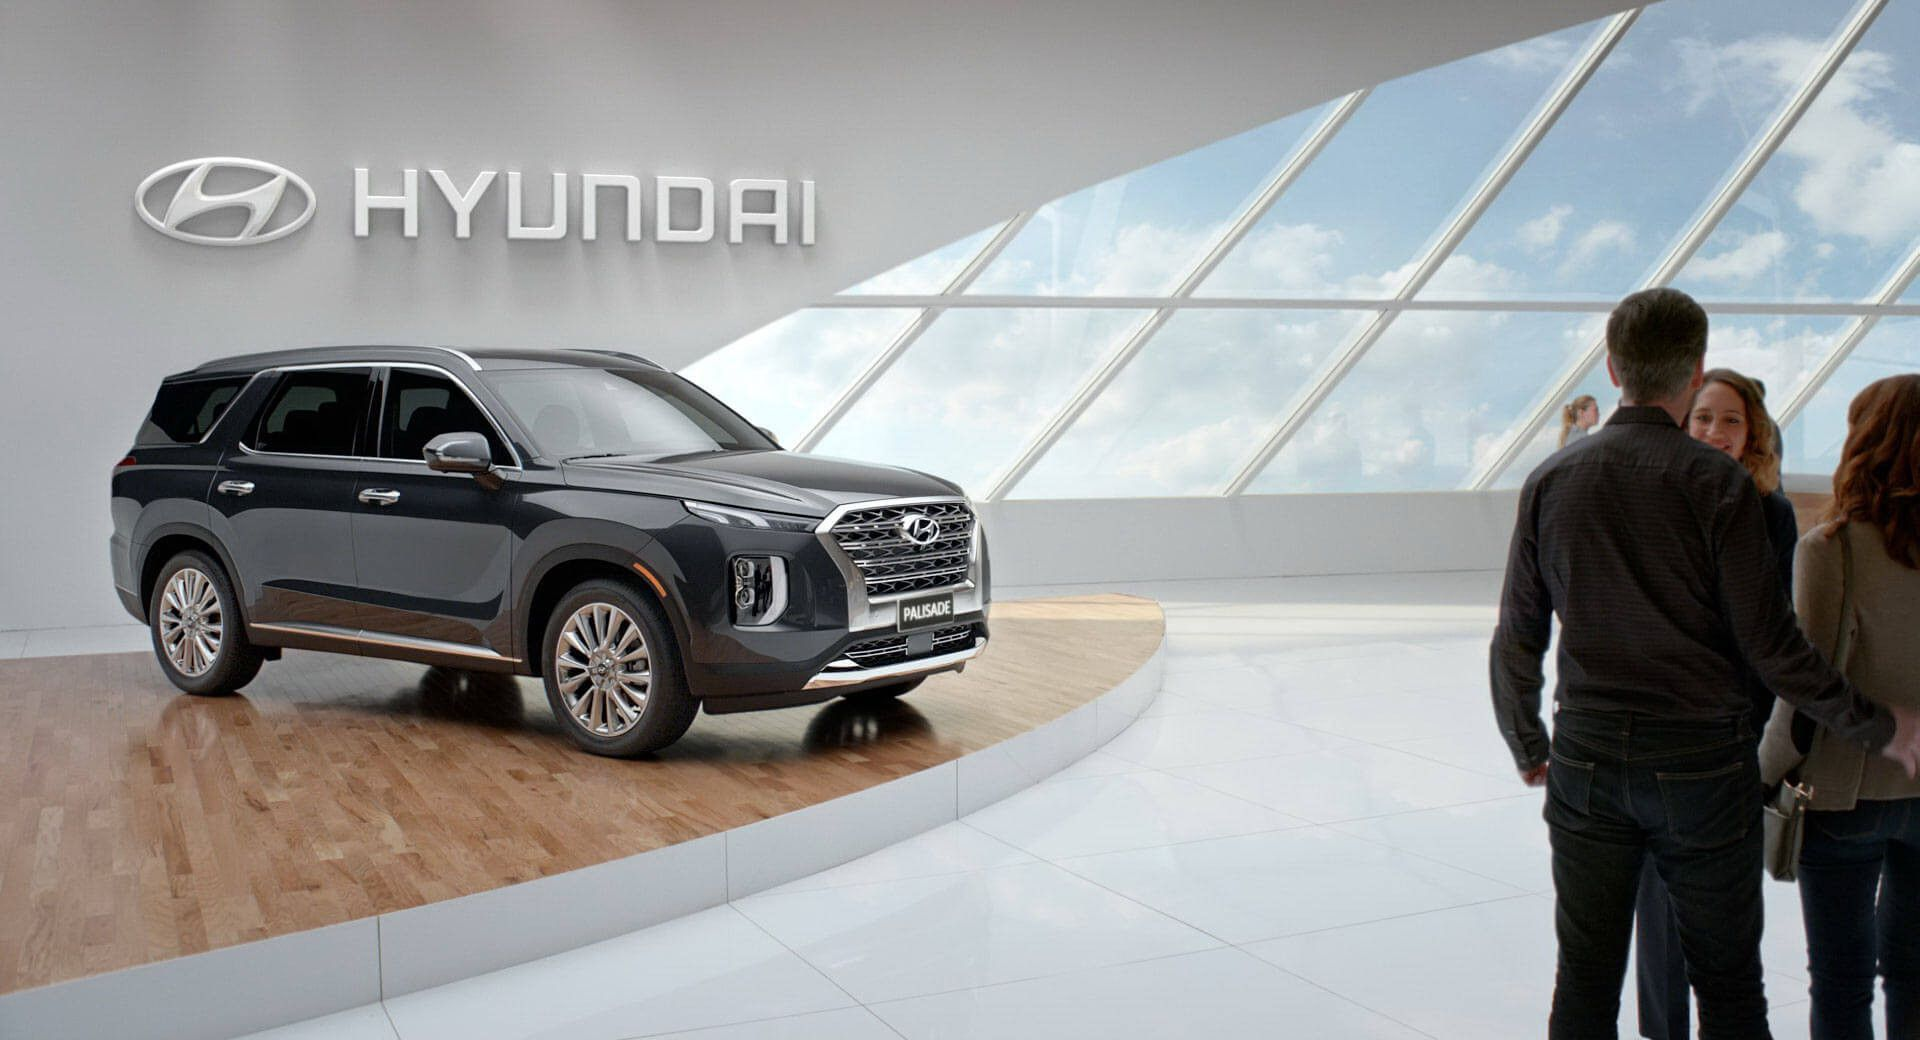 Hyundai Super Bowl Commercial 2020 Overview